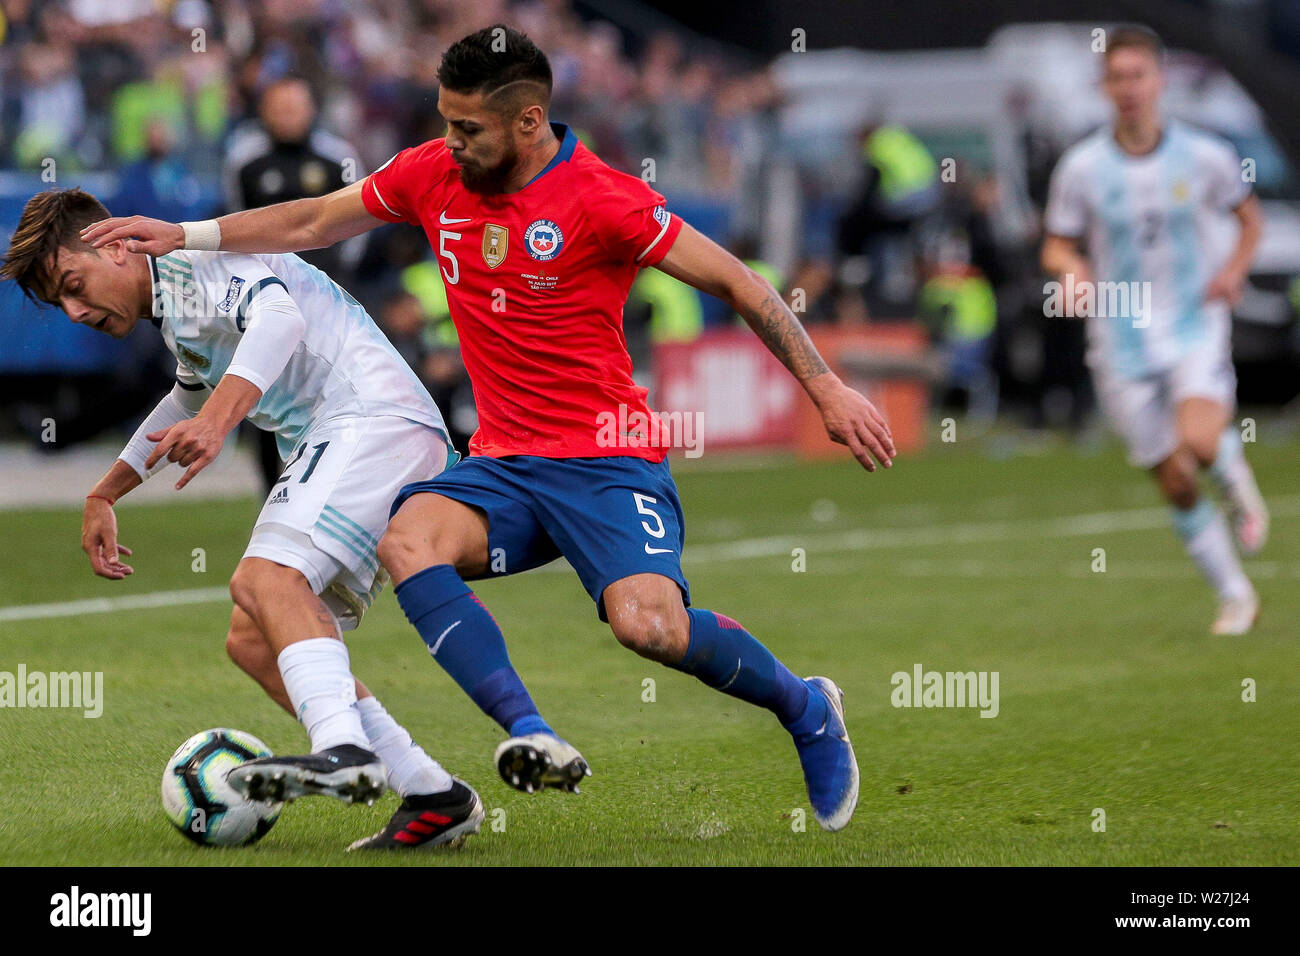 6th July 2019, Arena Corinthians Stadium, Sao Paulo, Brazil; Copa America international football, 3rd-4th playoff final, Argentina versus Chile; Paulo Dybala of Argentina holds off Paulo Díaz of Chile - Stock Image